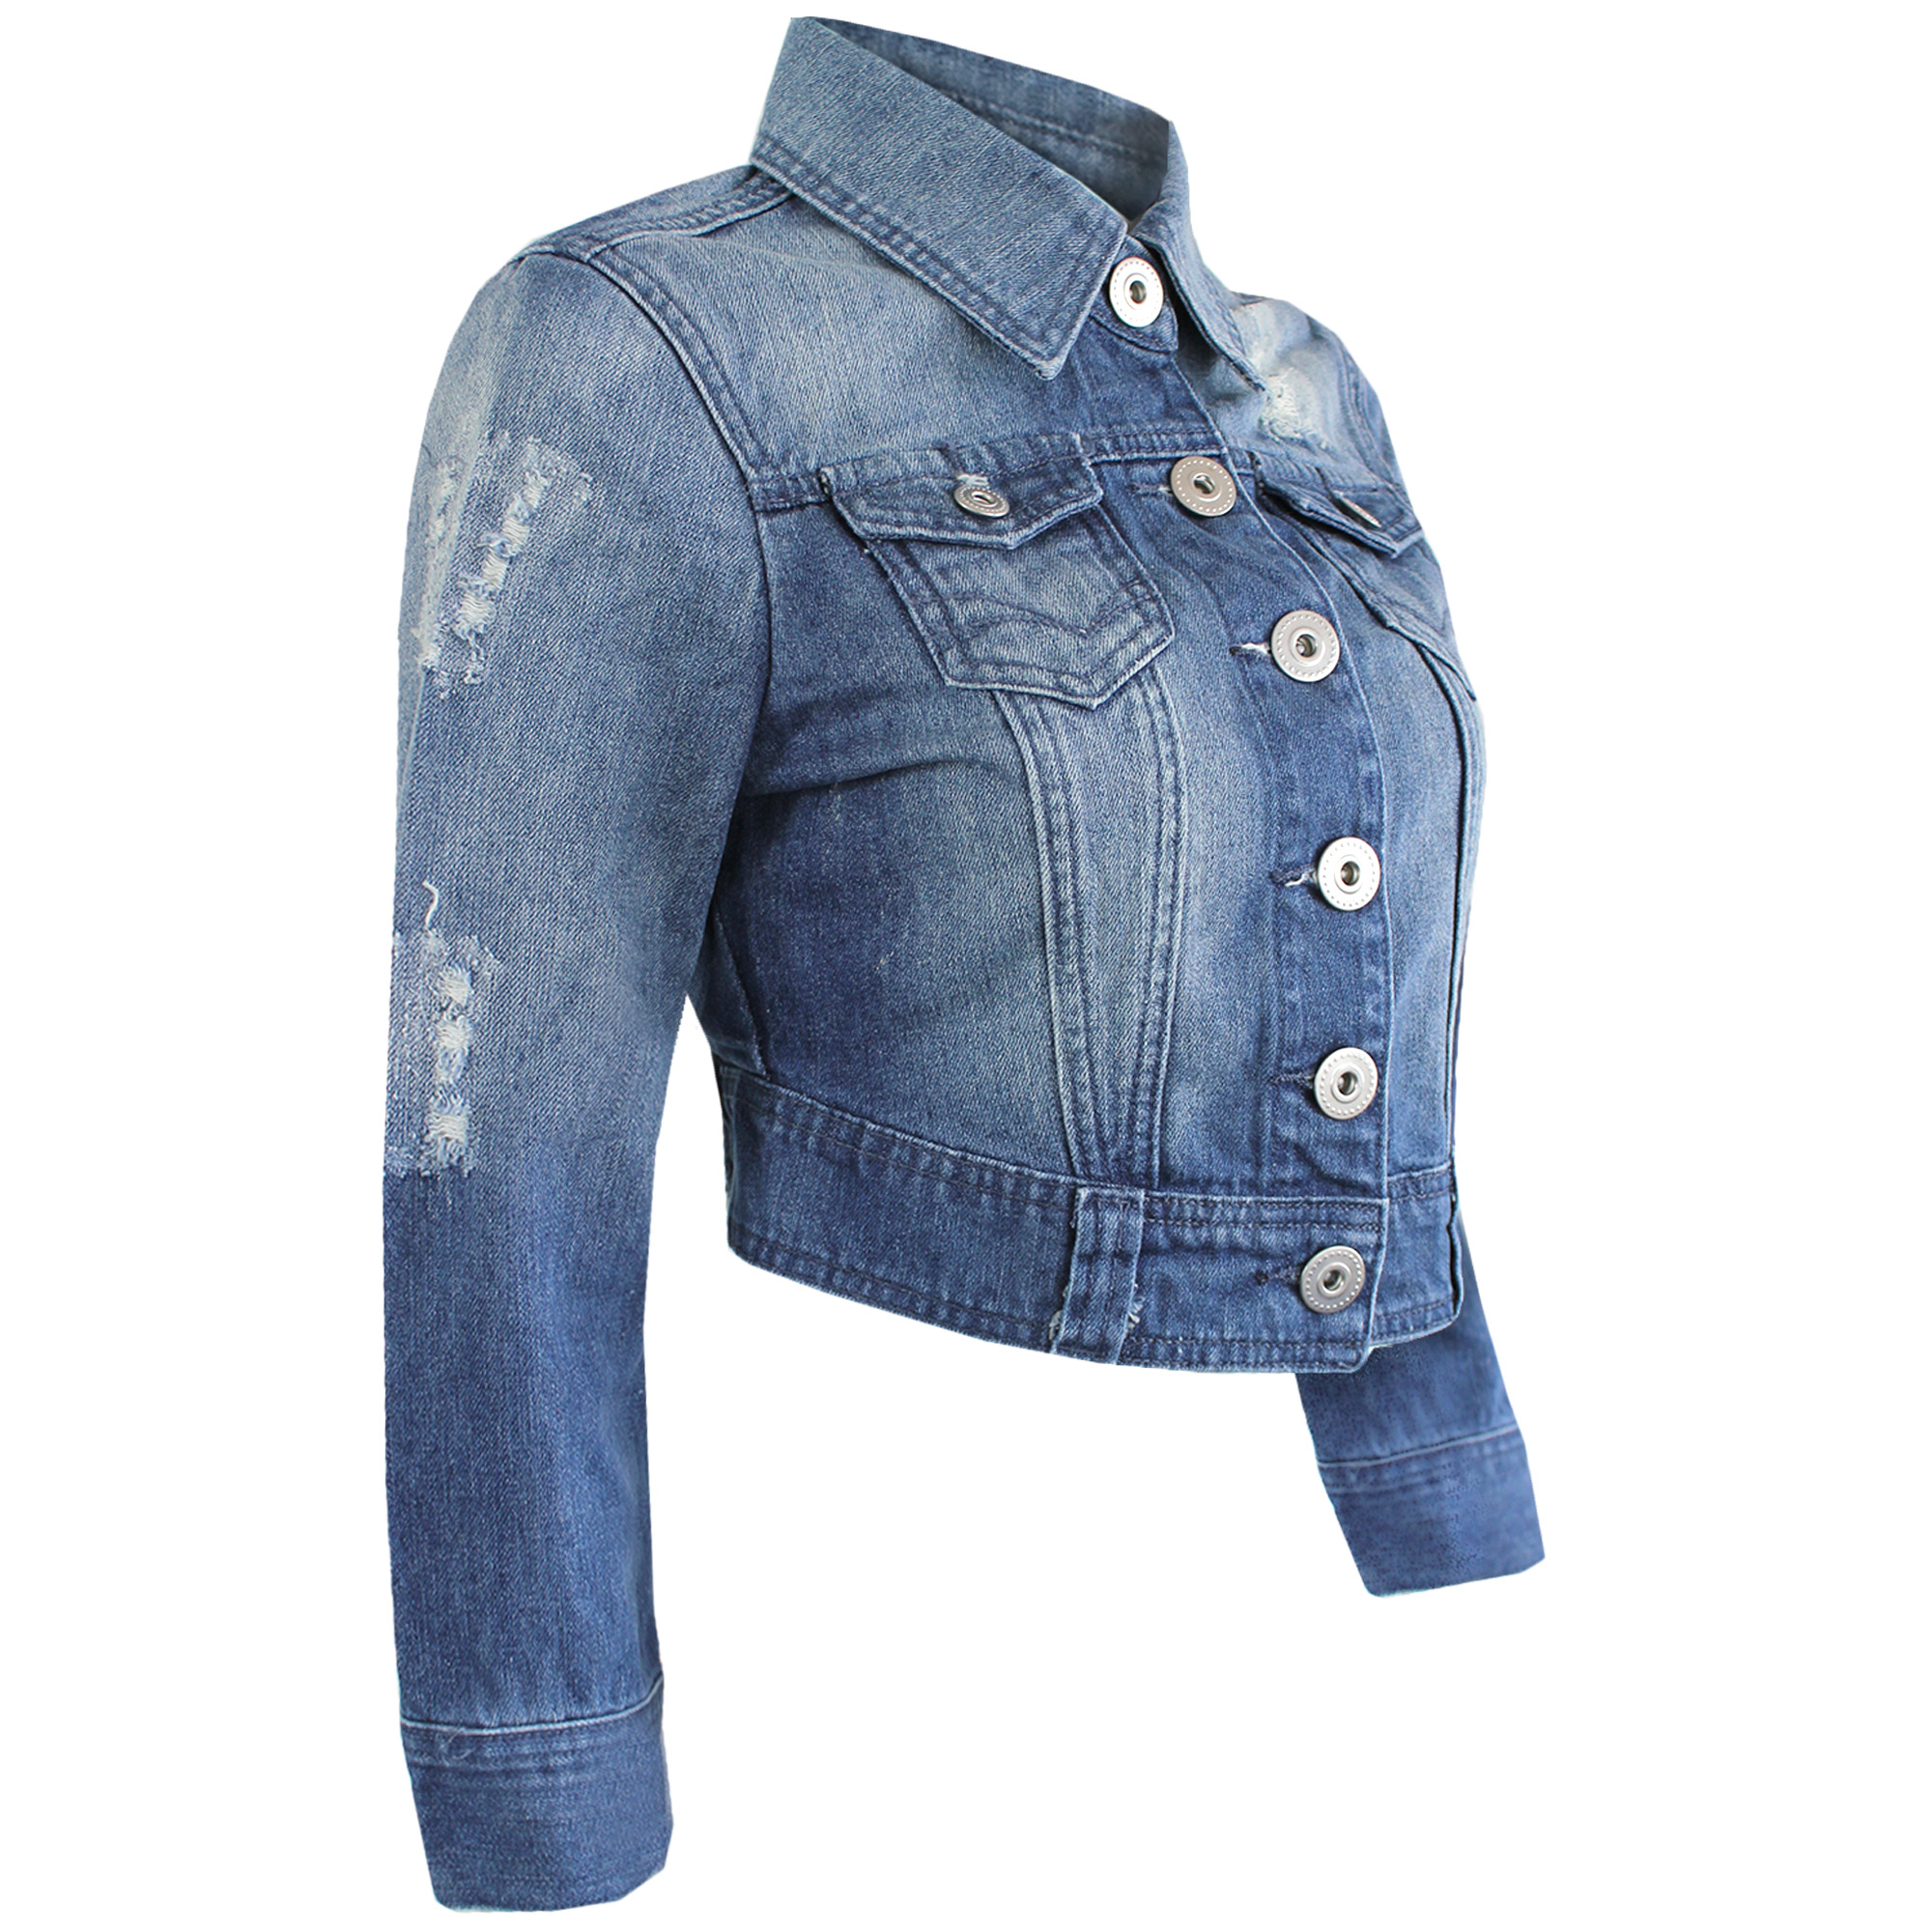 Womens short jackets